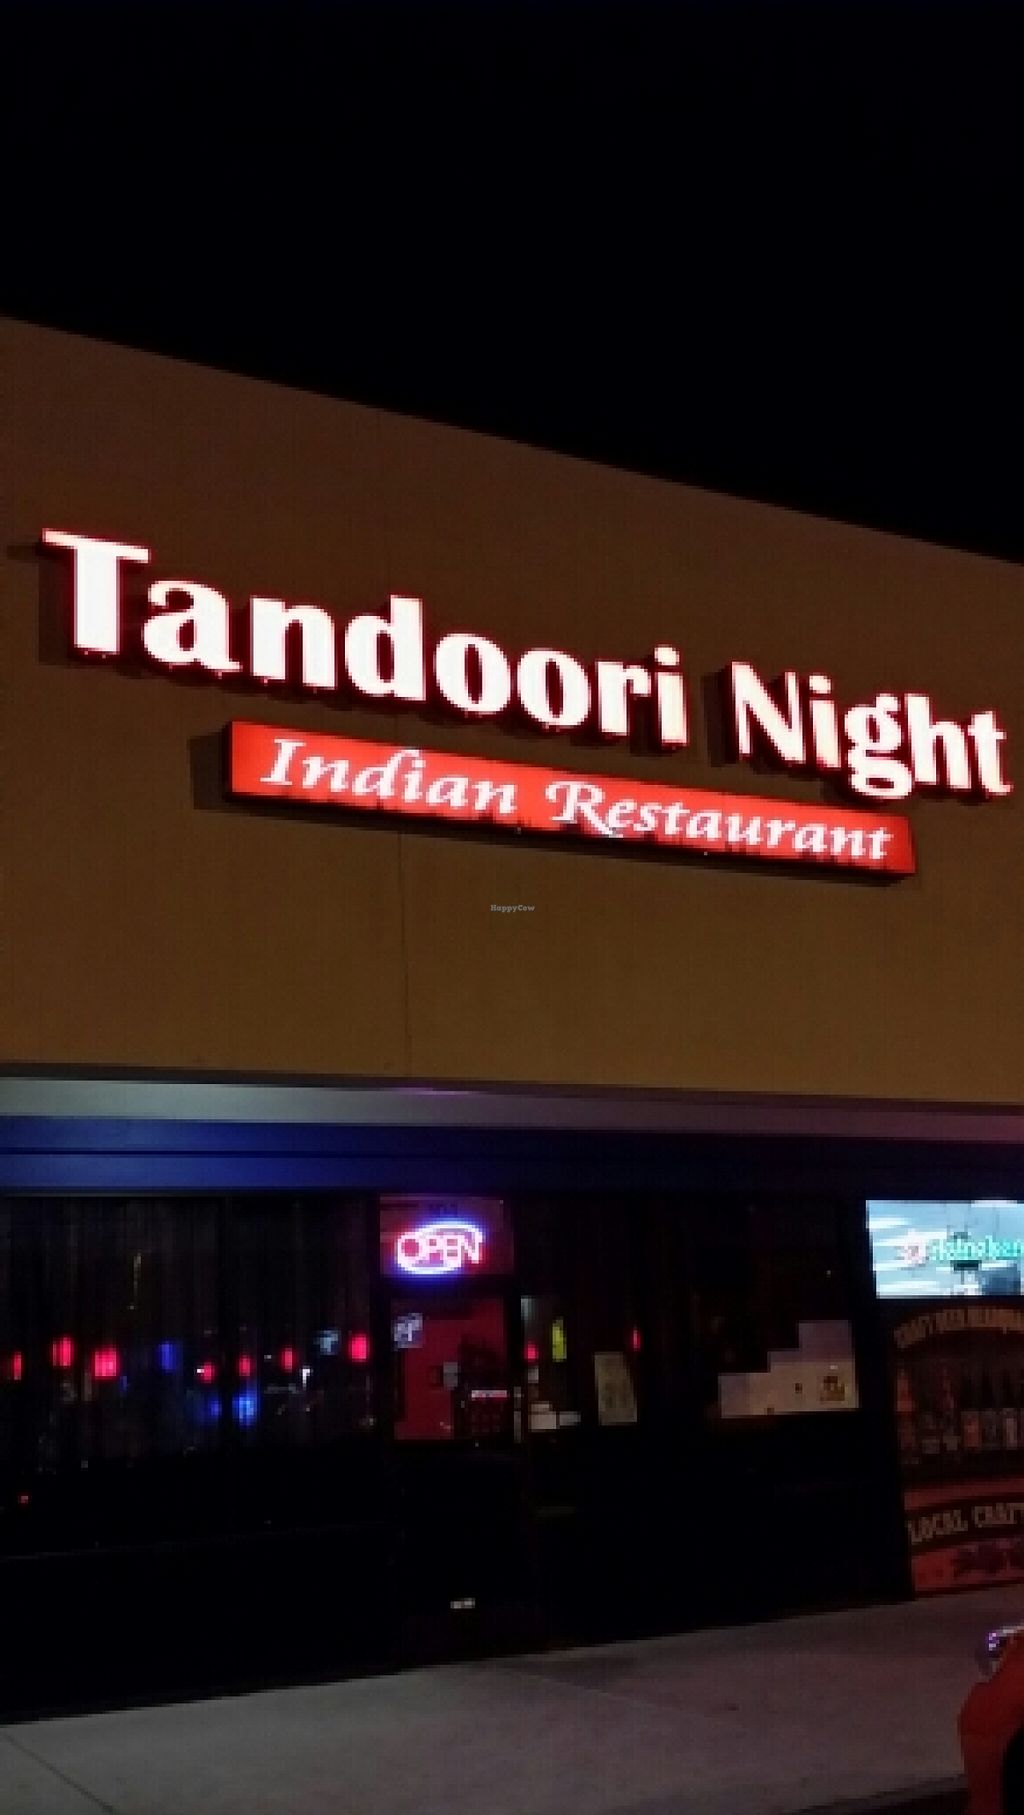 """Photo of Tandoori Night  by <a href=""""/members/profile/catbone"""">catbone</a> <br/>Storefront <br/> February 23, 2016  - <a href='/contact/abuse/image/59117/137497'>Report</a>"""